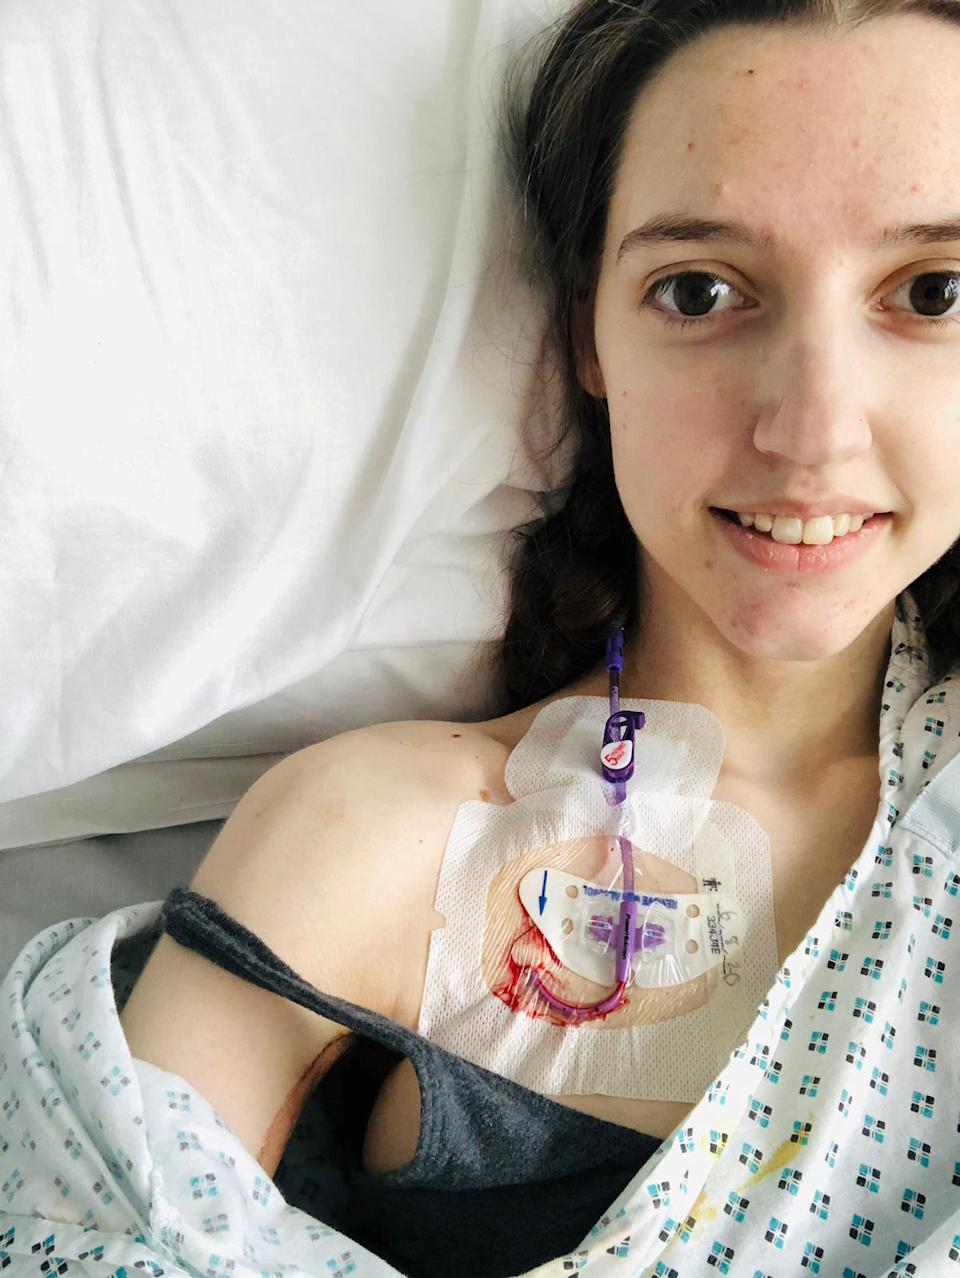 The 20-year-old is now fed through her heart. (Image supplied SWNS)